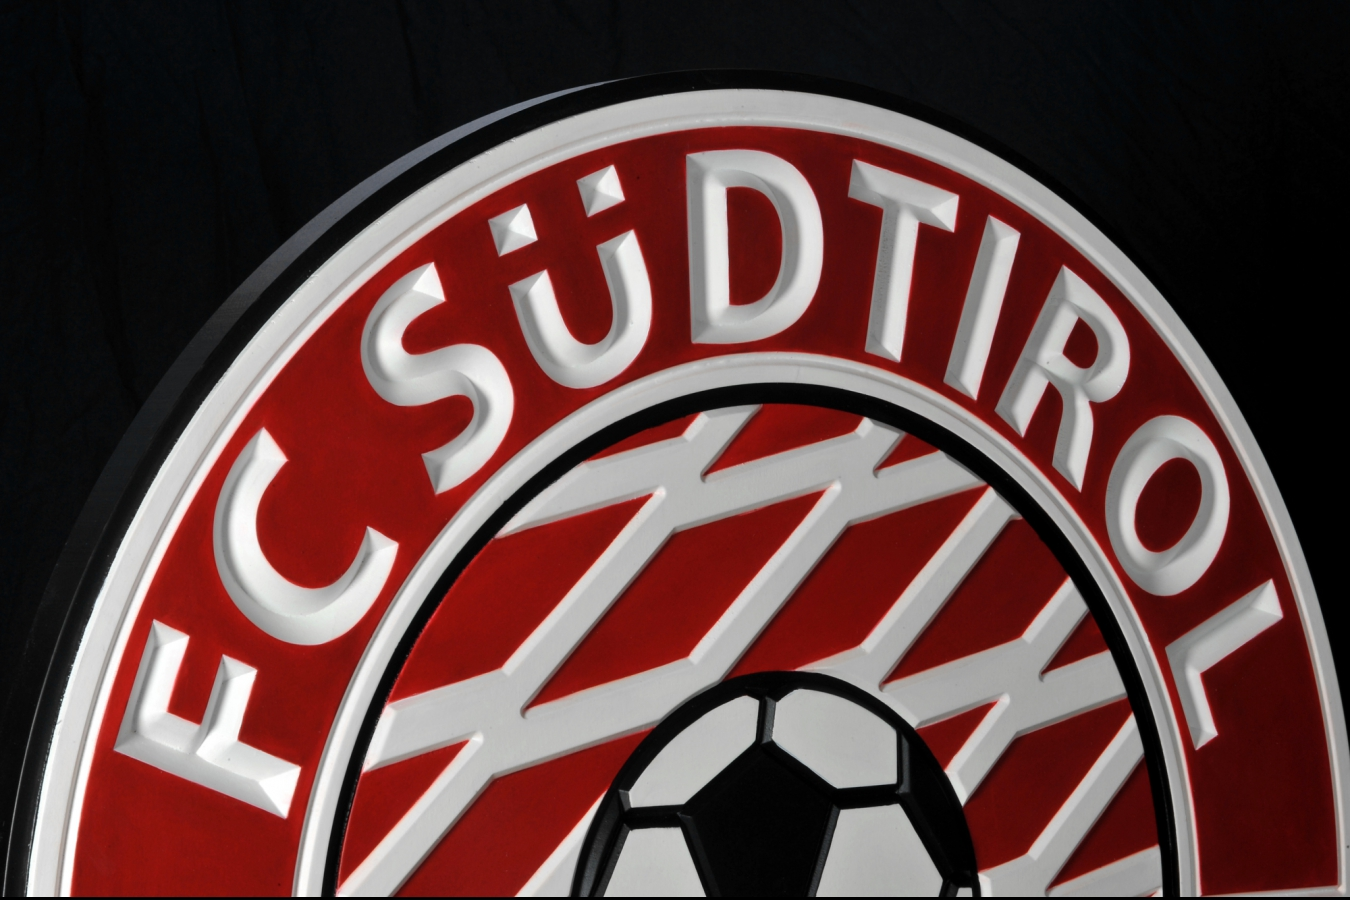 FC Südtirol - 3D Wood three dimensional thinking